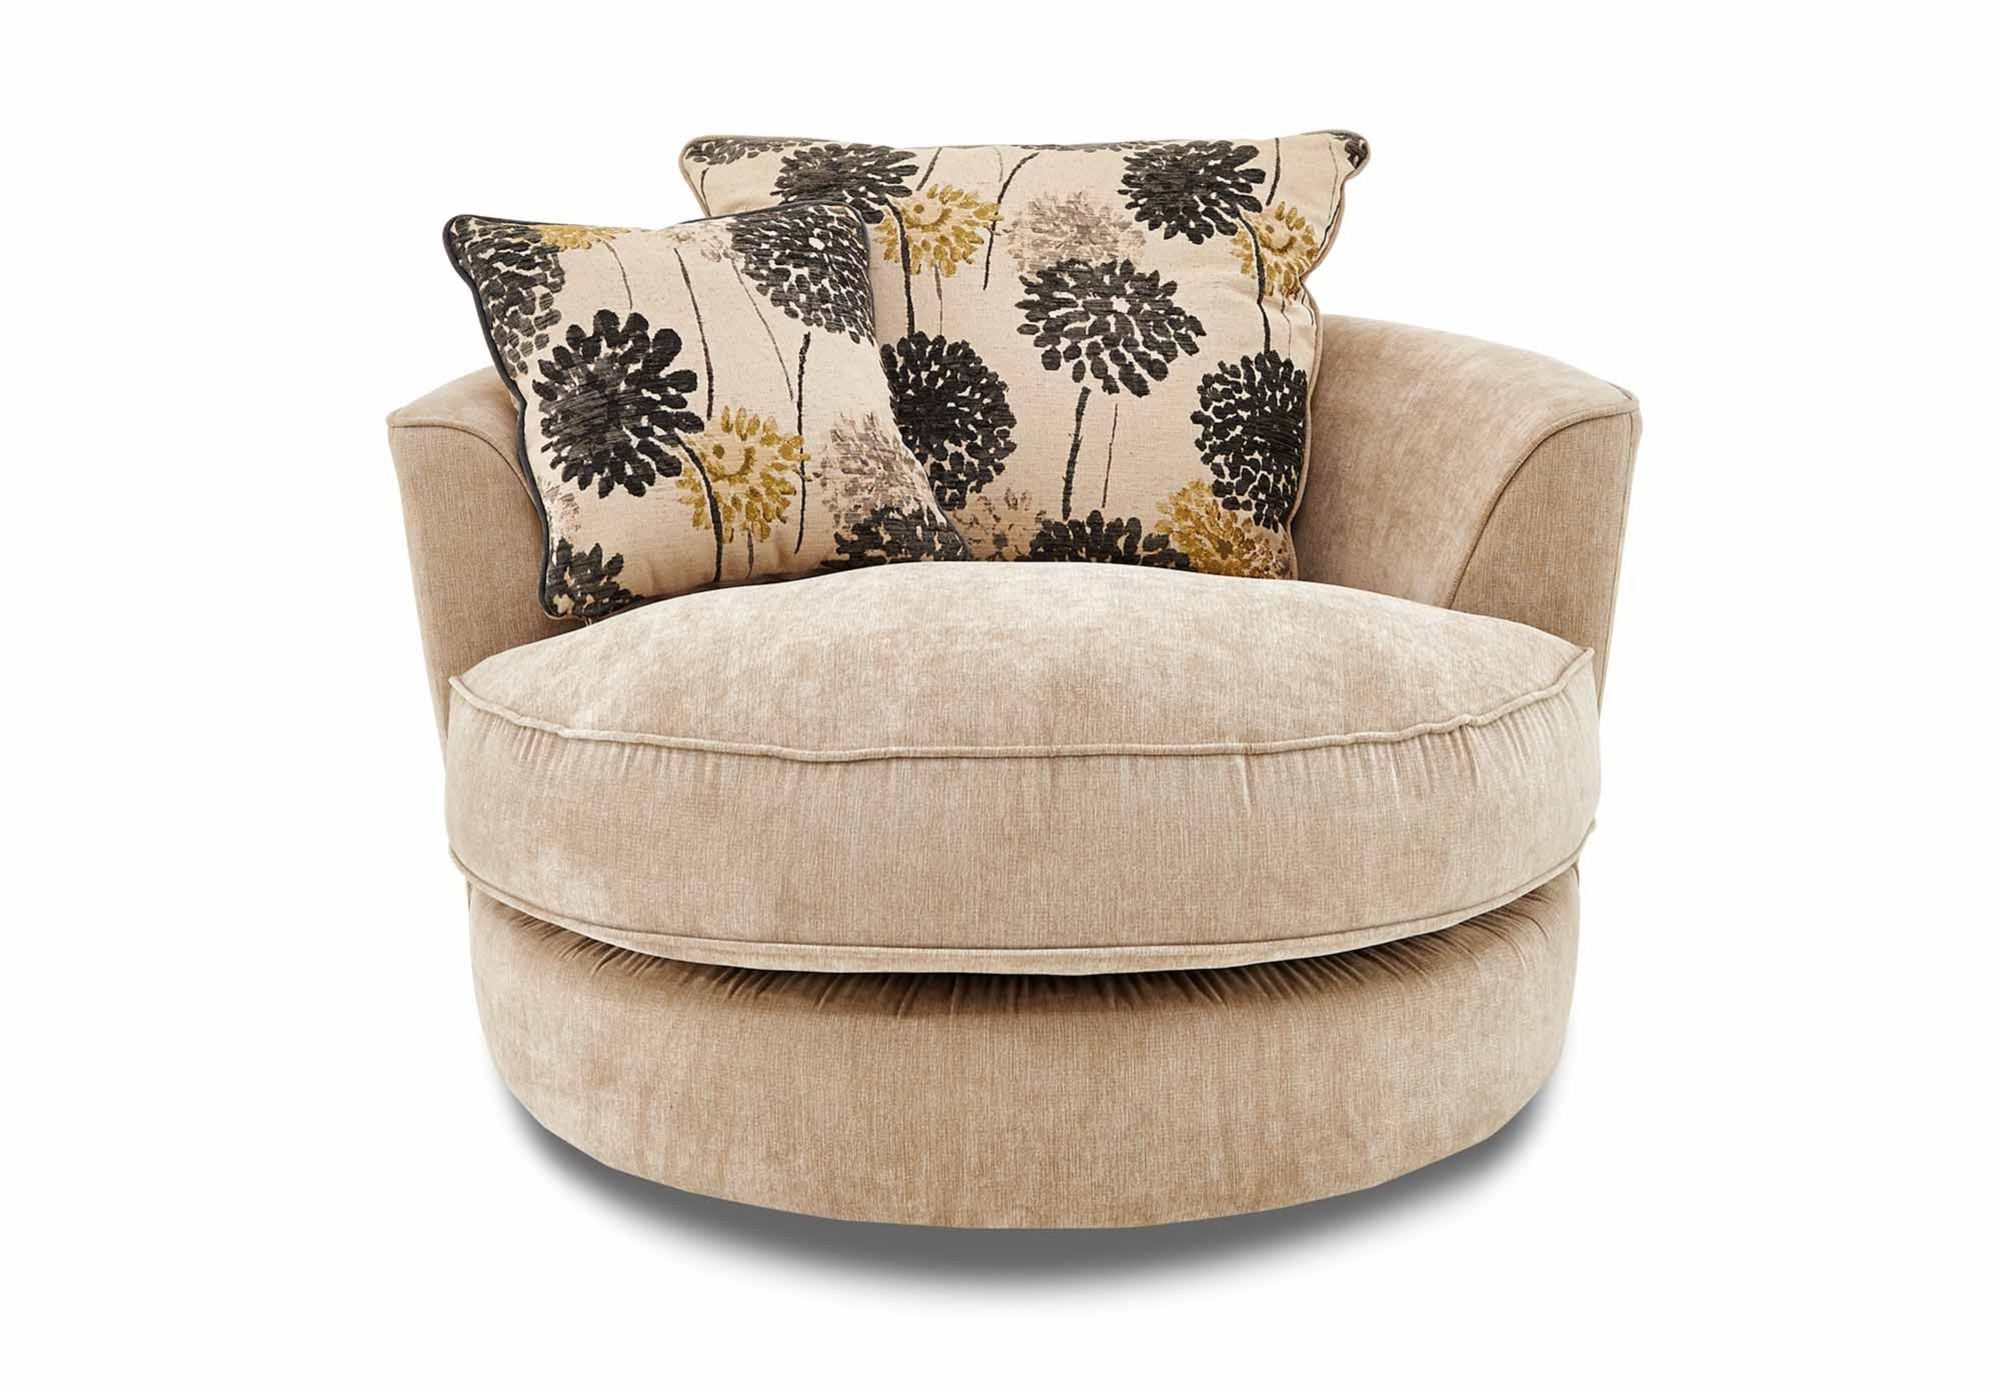 Buoyant Tangier Snuggle Swivel Chair at Furniture Village - Buoyant Tangier Upholstered Furniture at Furniture Village - Gorgeous Living Room Furniture from Furniture Village